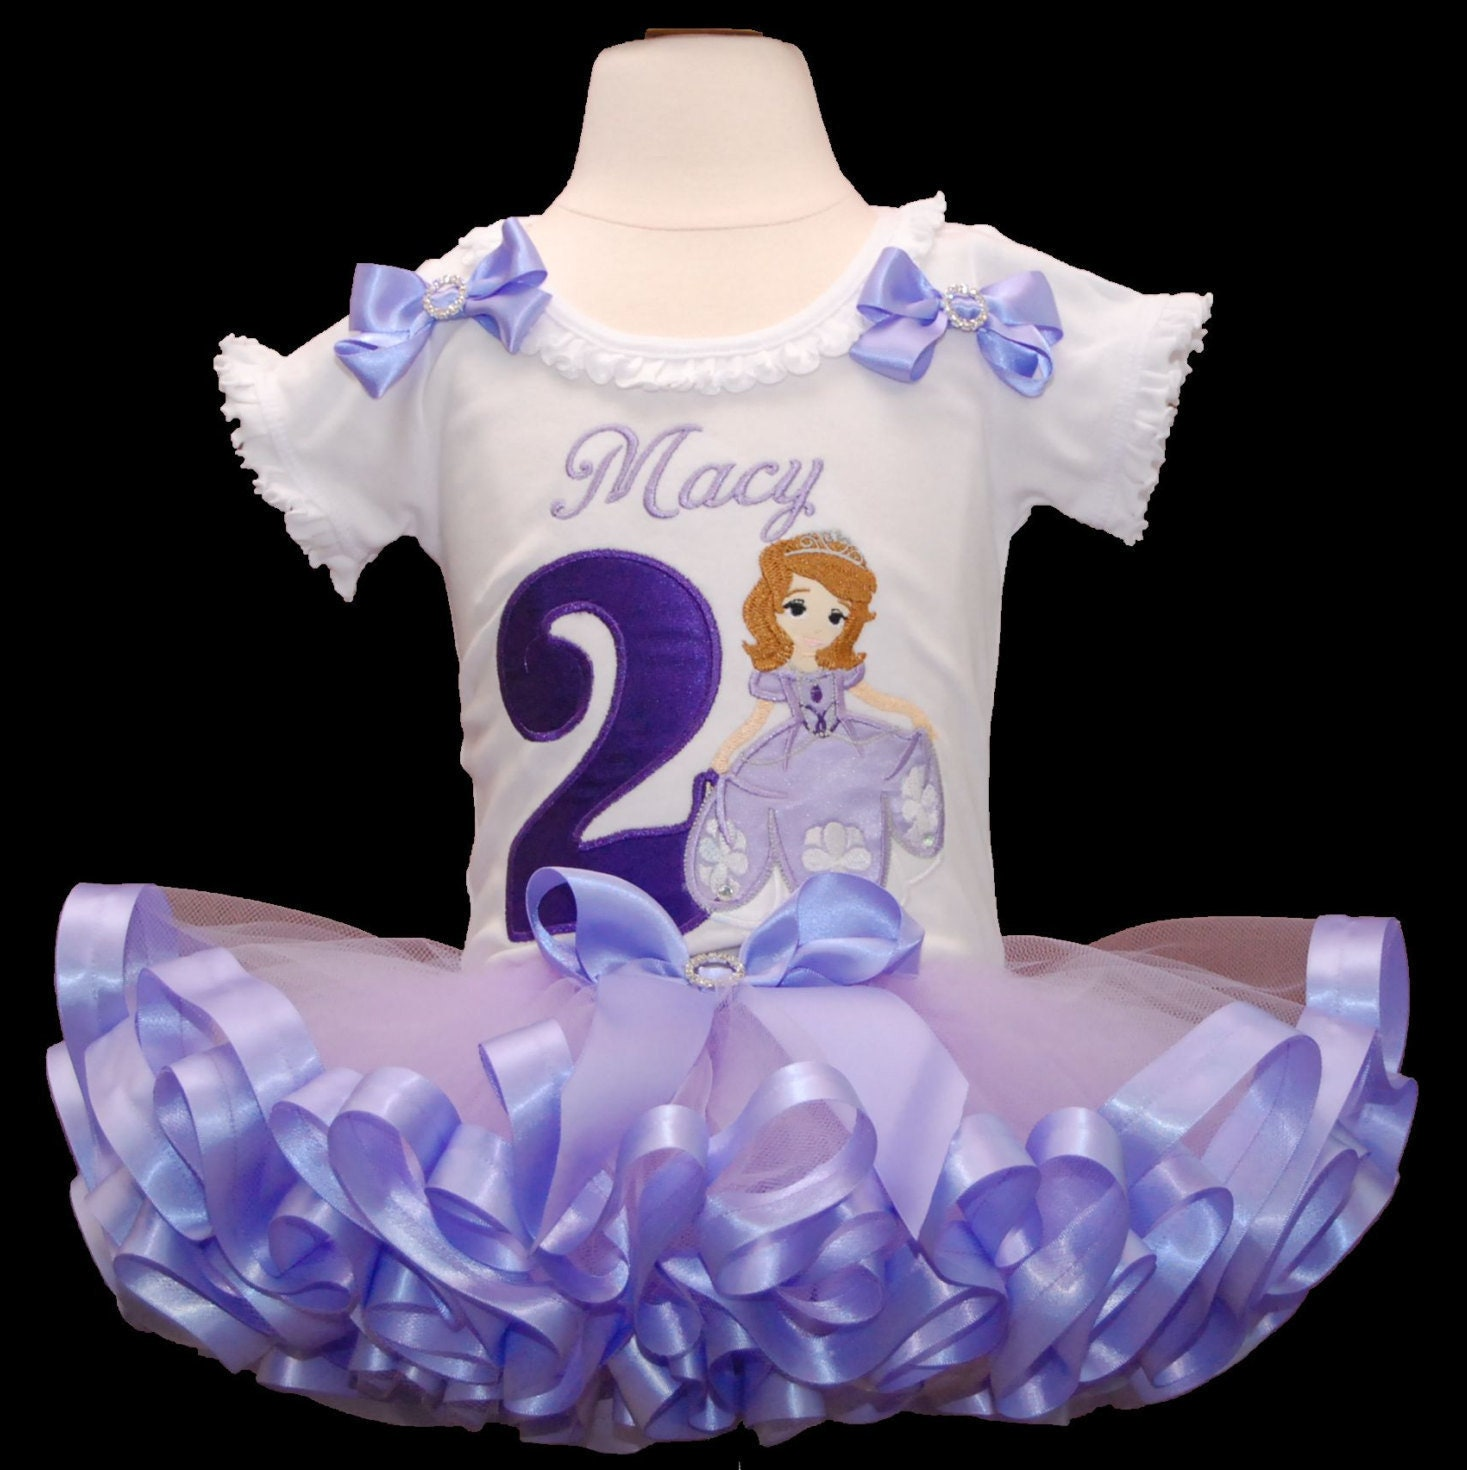 birthday tutu outfit princess sofia birthday tutu dress tutu outfit 2nd birthday tutu outffit 2 year old ribbon trimmed tutu personalized